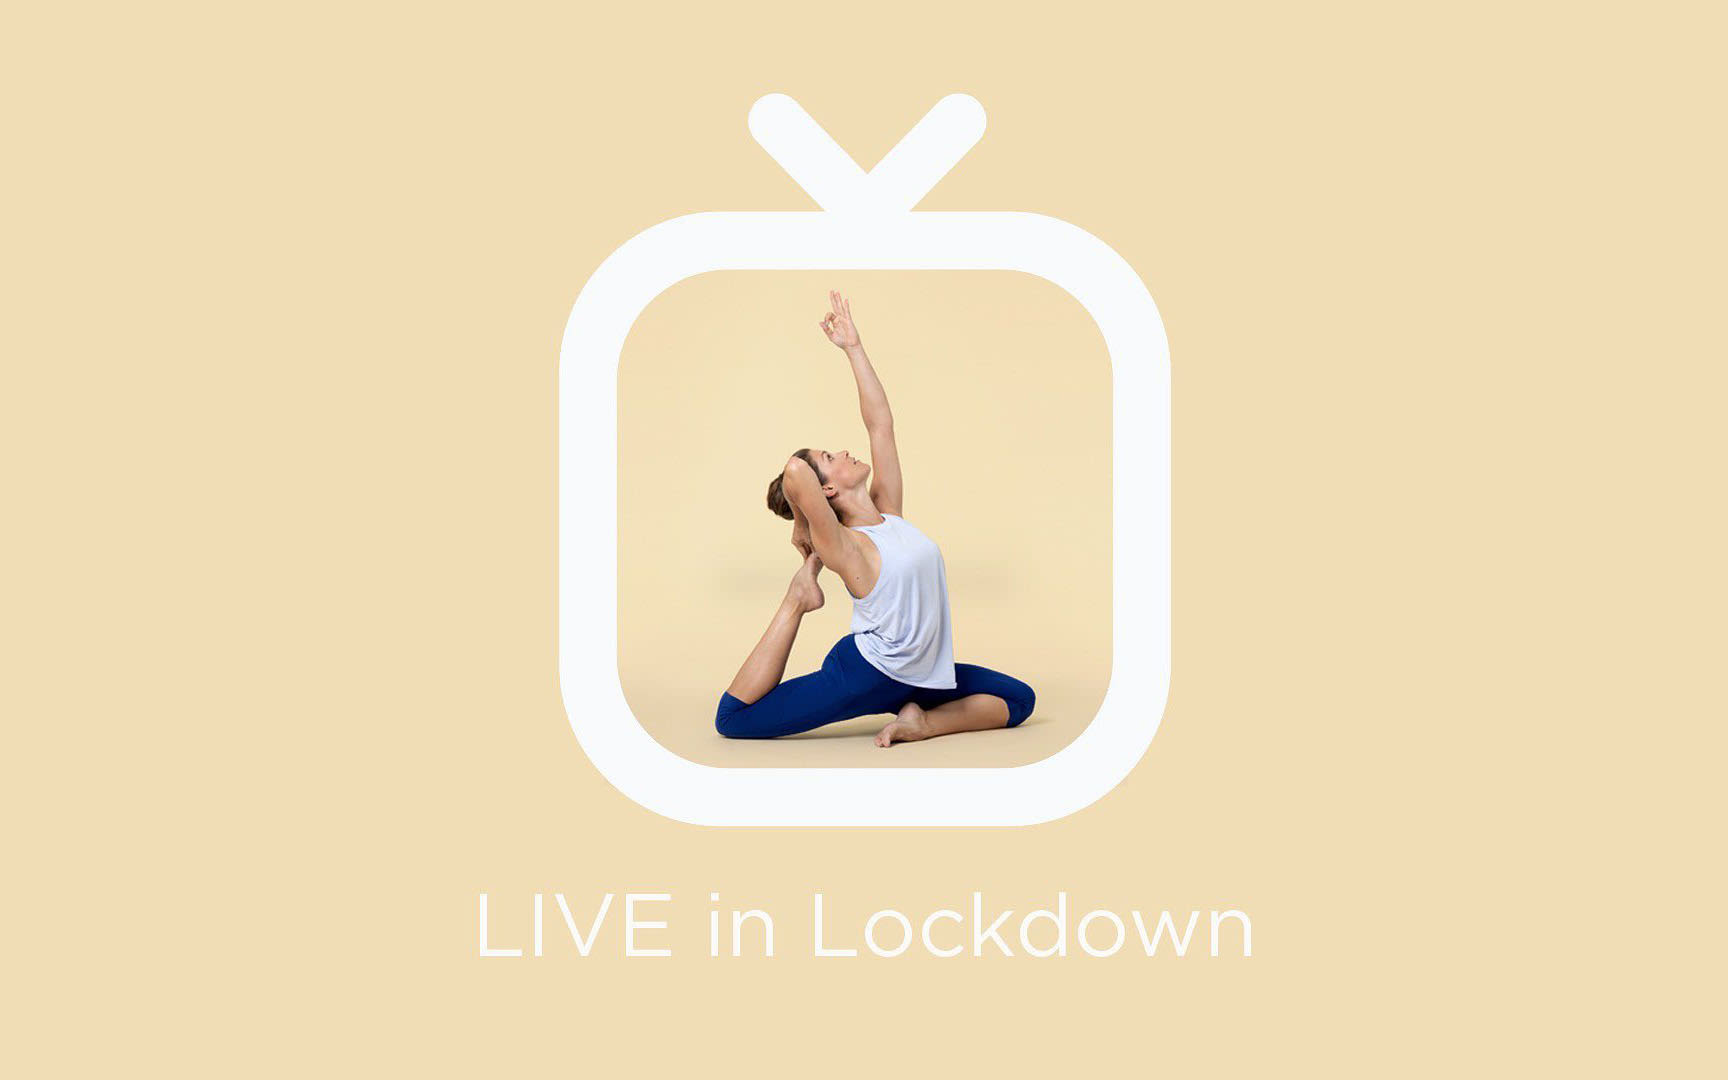 A woman practising yoga on a yellow background, surrounded by an icon of a television. Text below reads LIVE in Lockdown